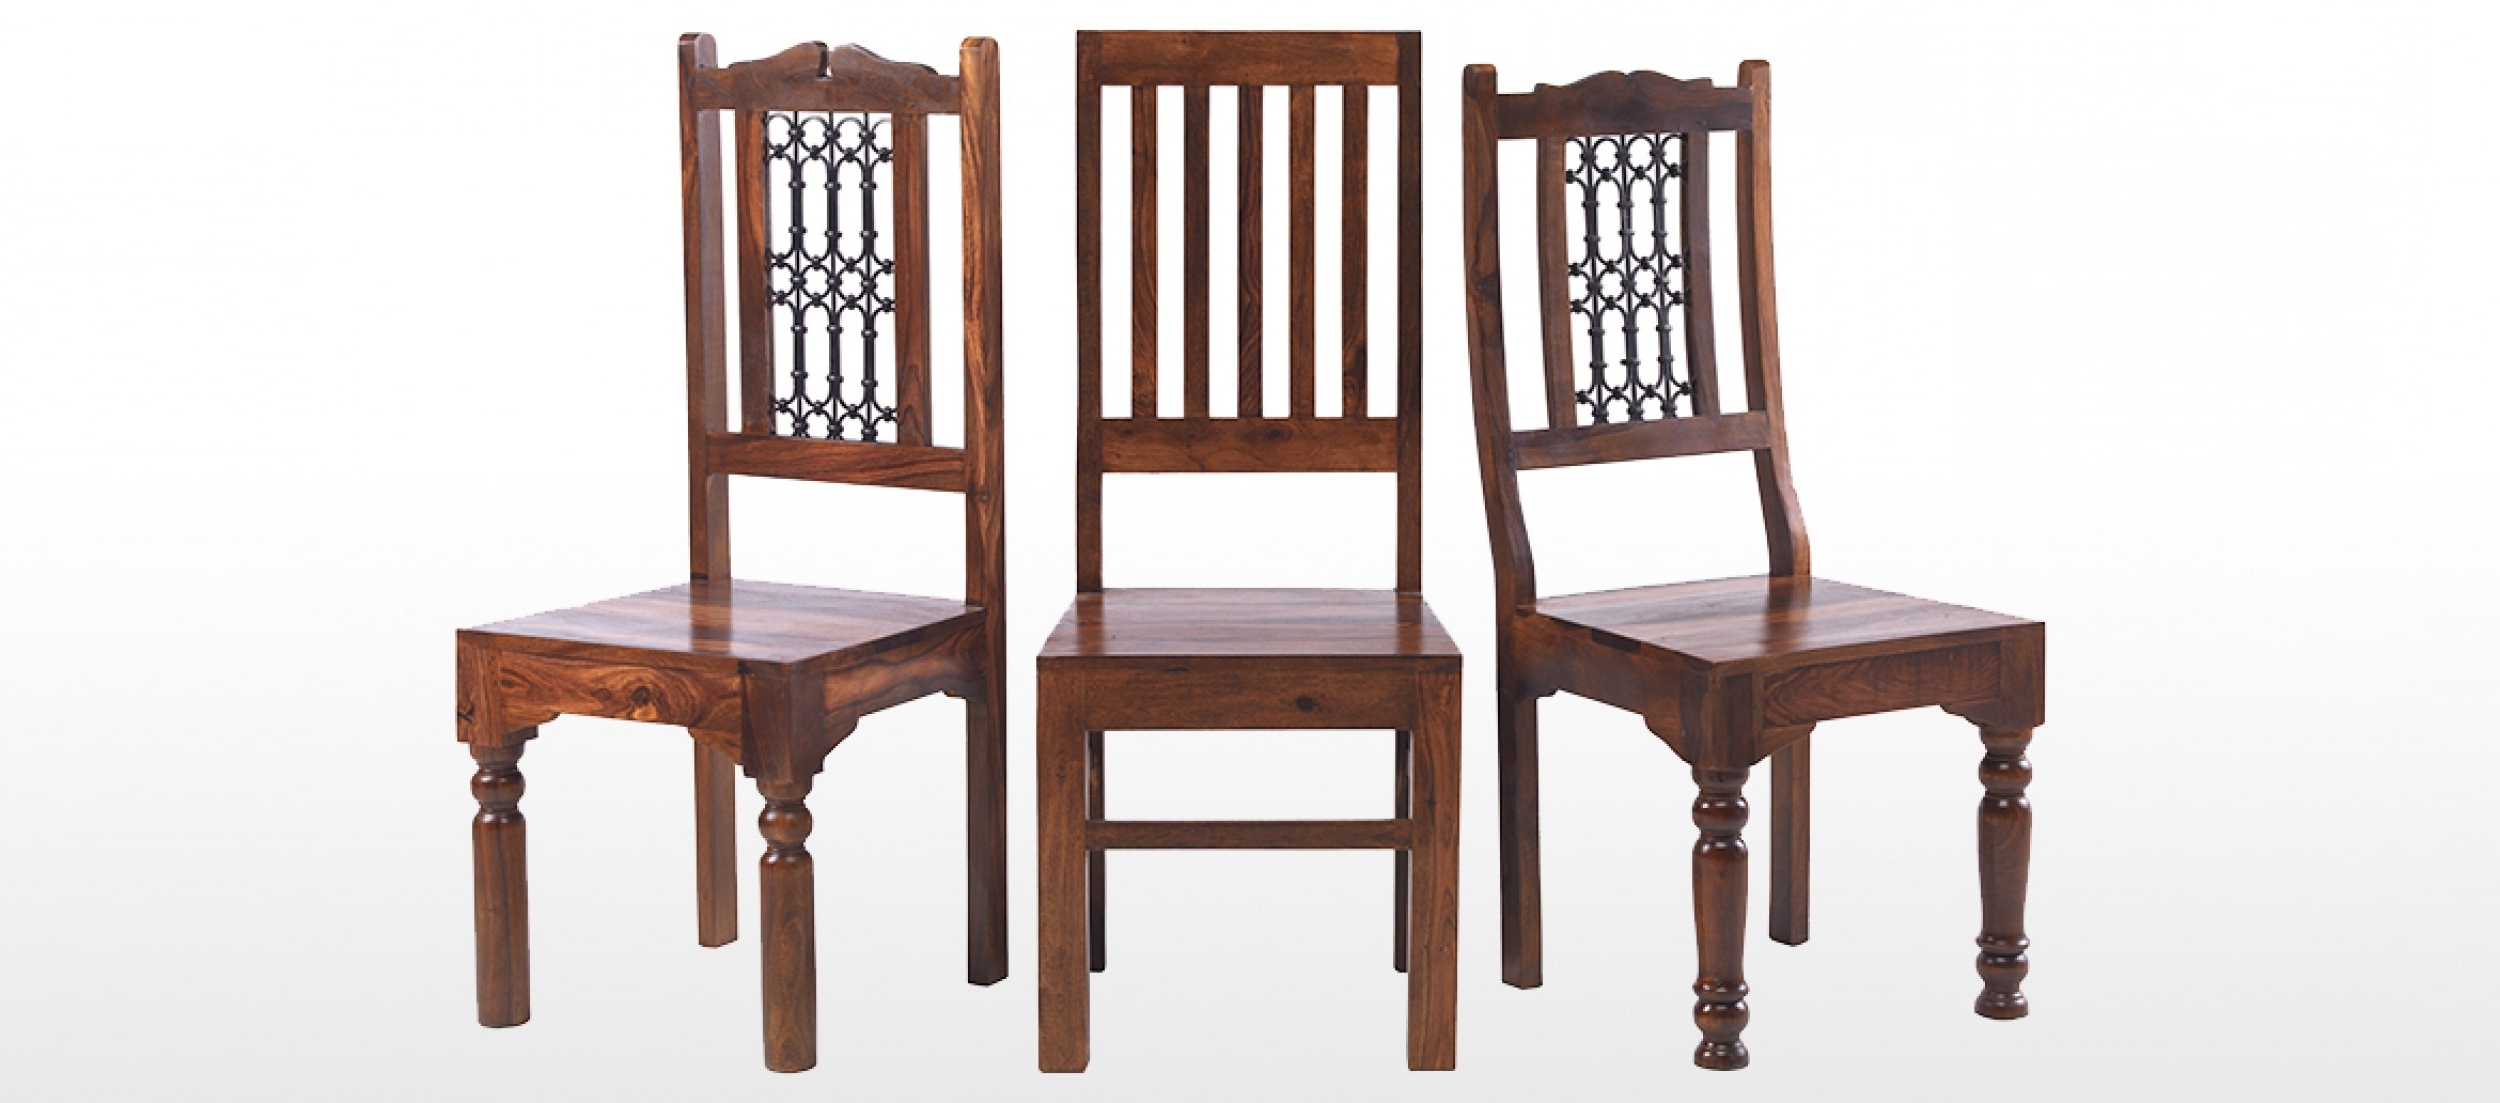 Quercus Living In Dining Tables Chairs (View 22 of 25)